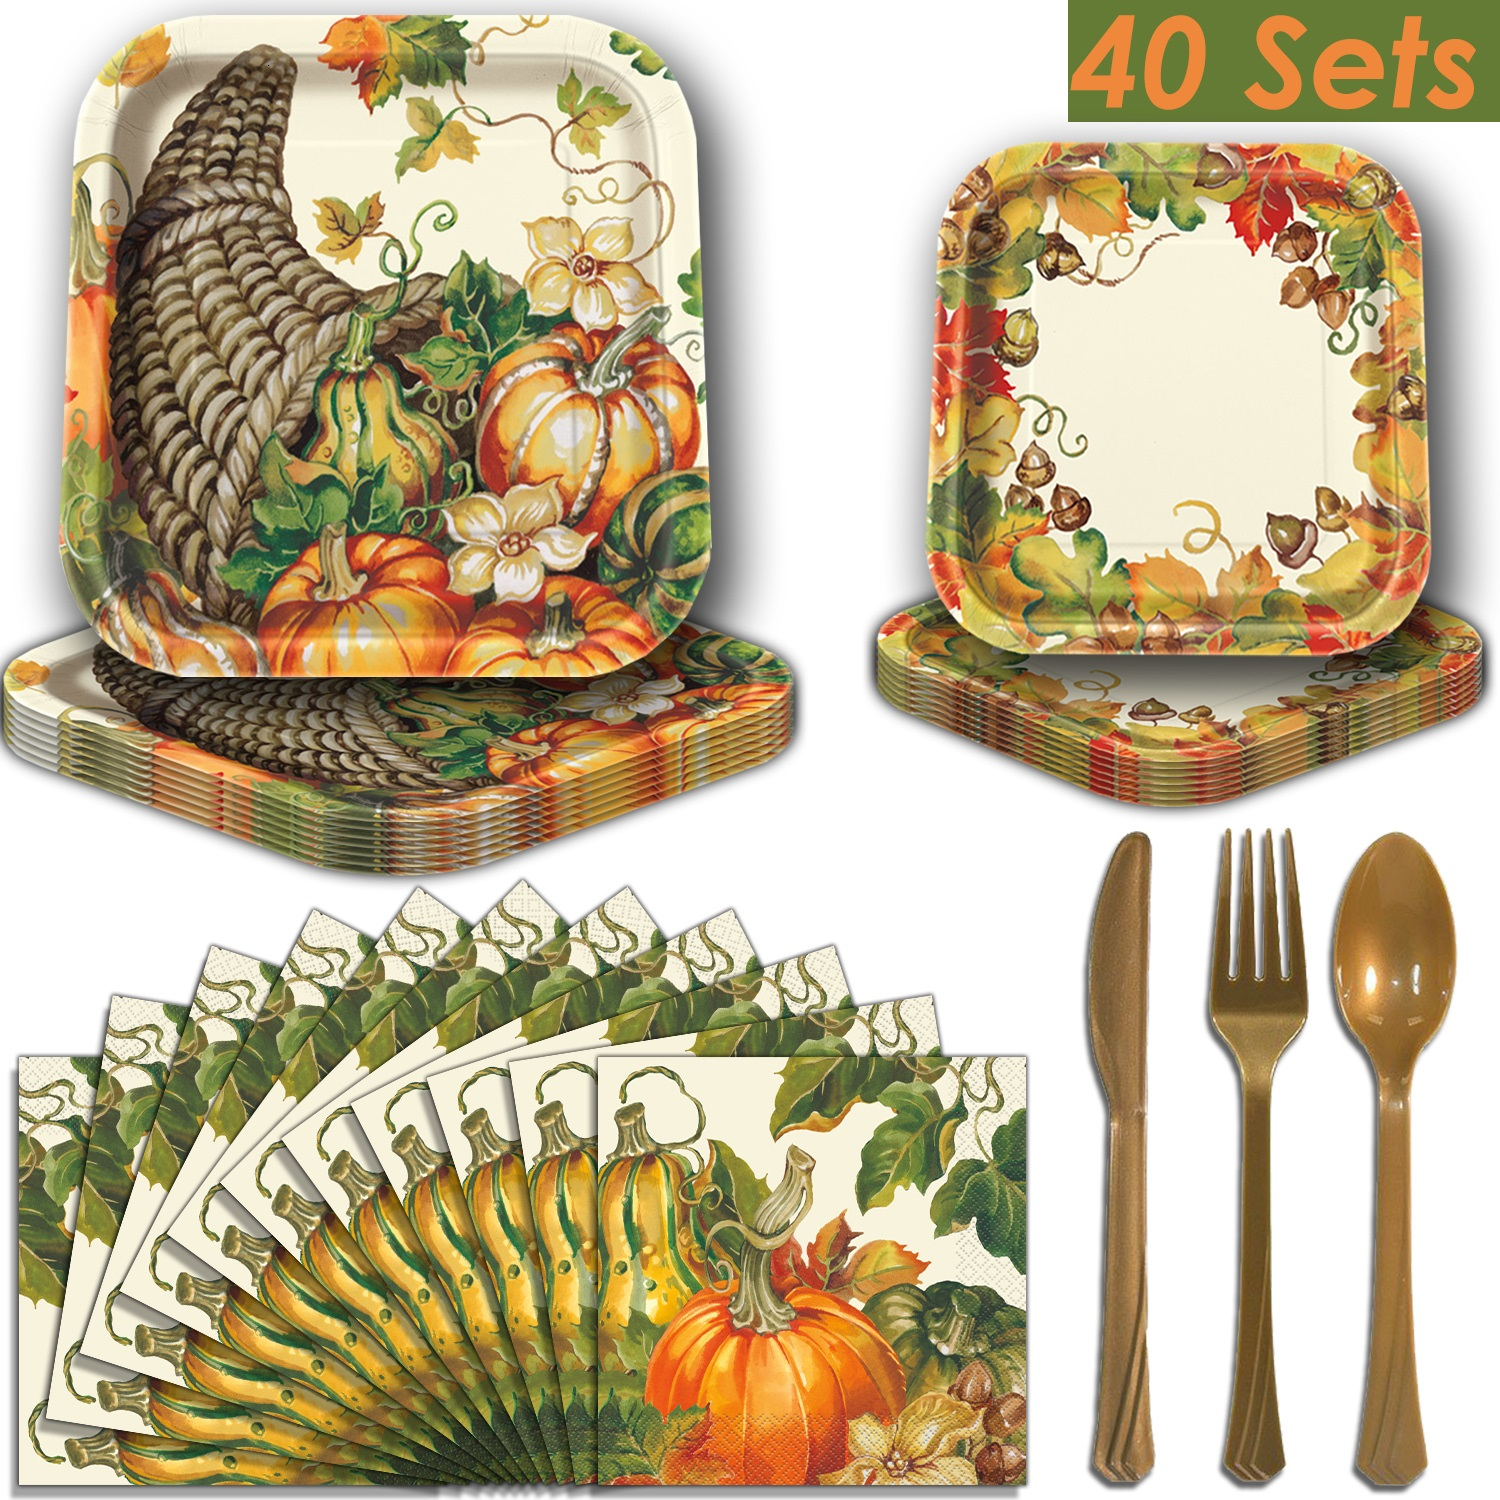 Fall Harvest Square Party Supplies for 40 - Dinner Plates, Dessert Plates, Luncheon Napkins, Gold Plastic Cutlery (Premier Strength). Thanksgiving and Autumn Theme Dinnerware